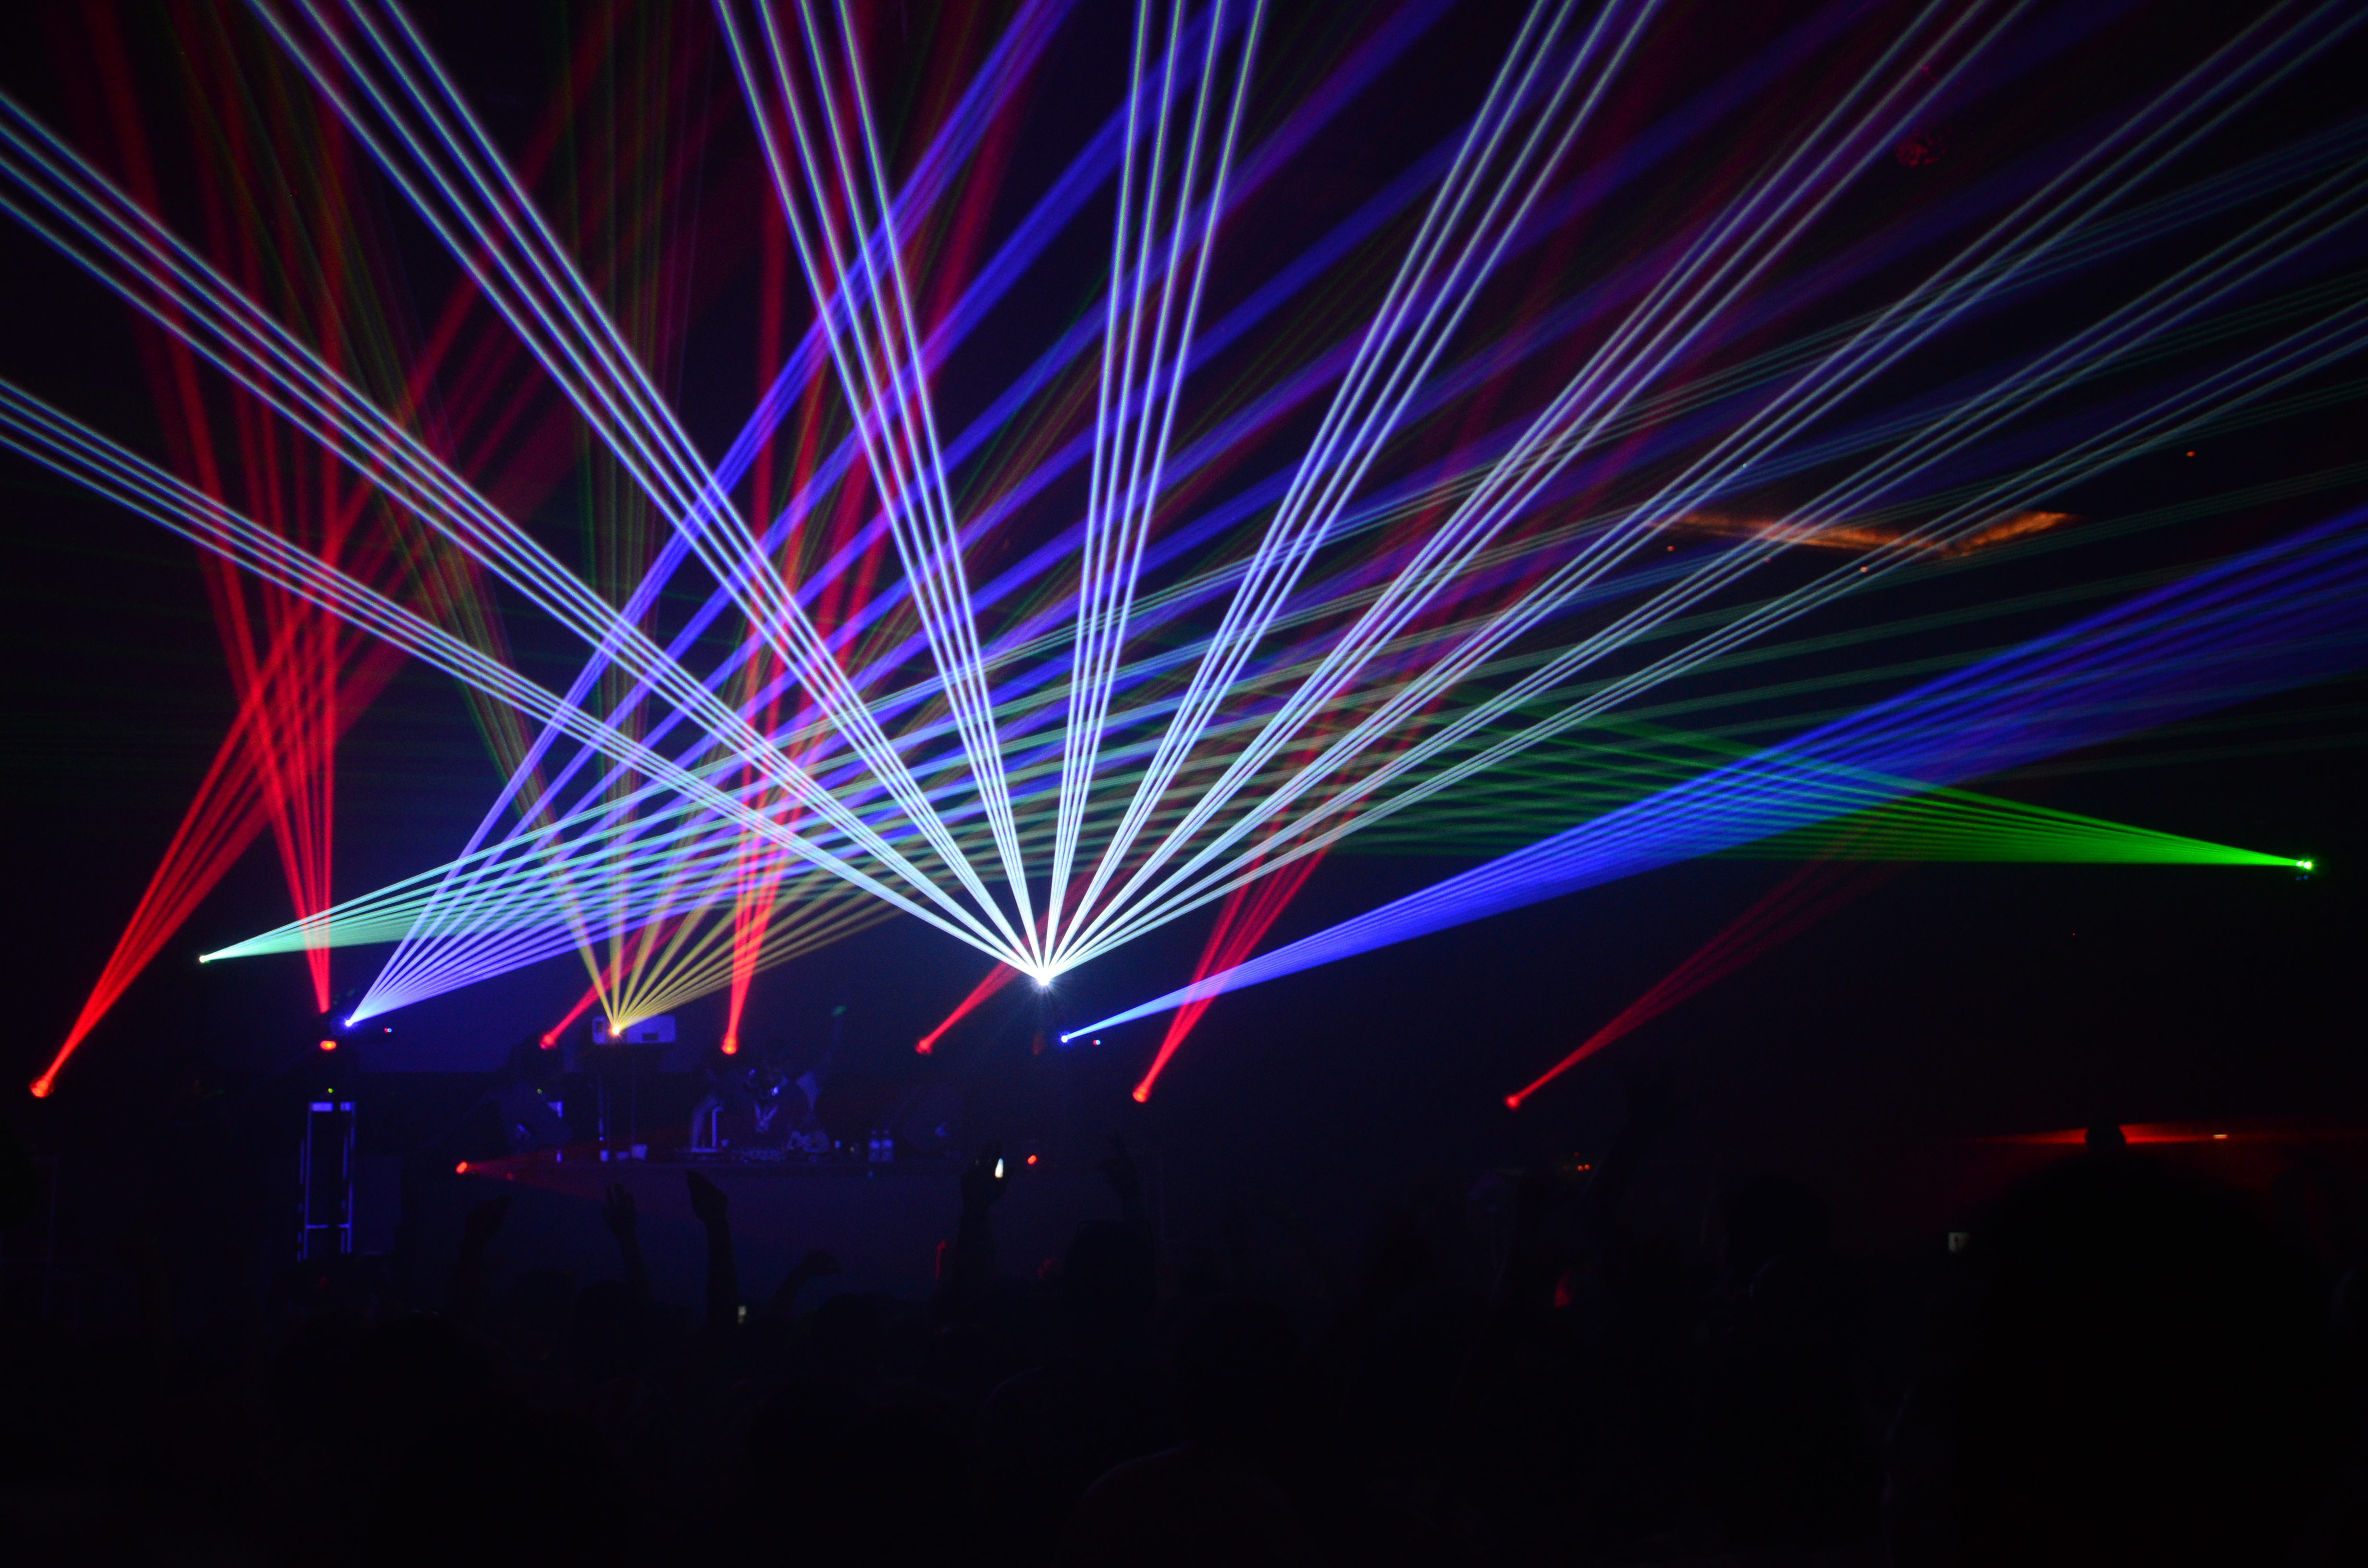 Lasers in Houston